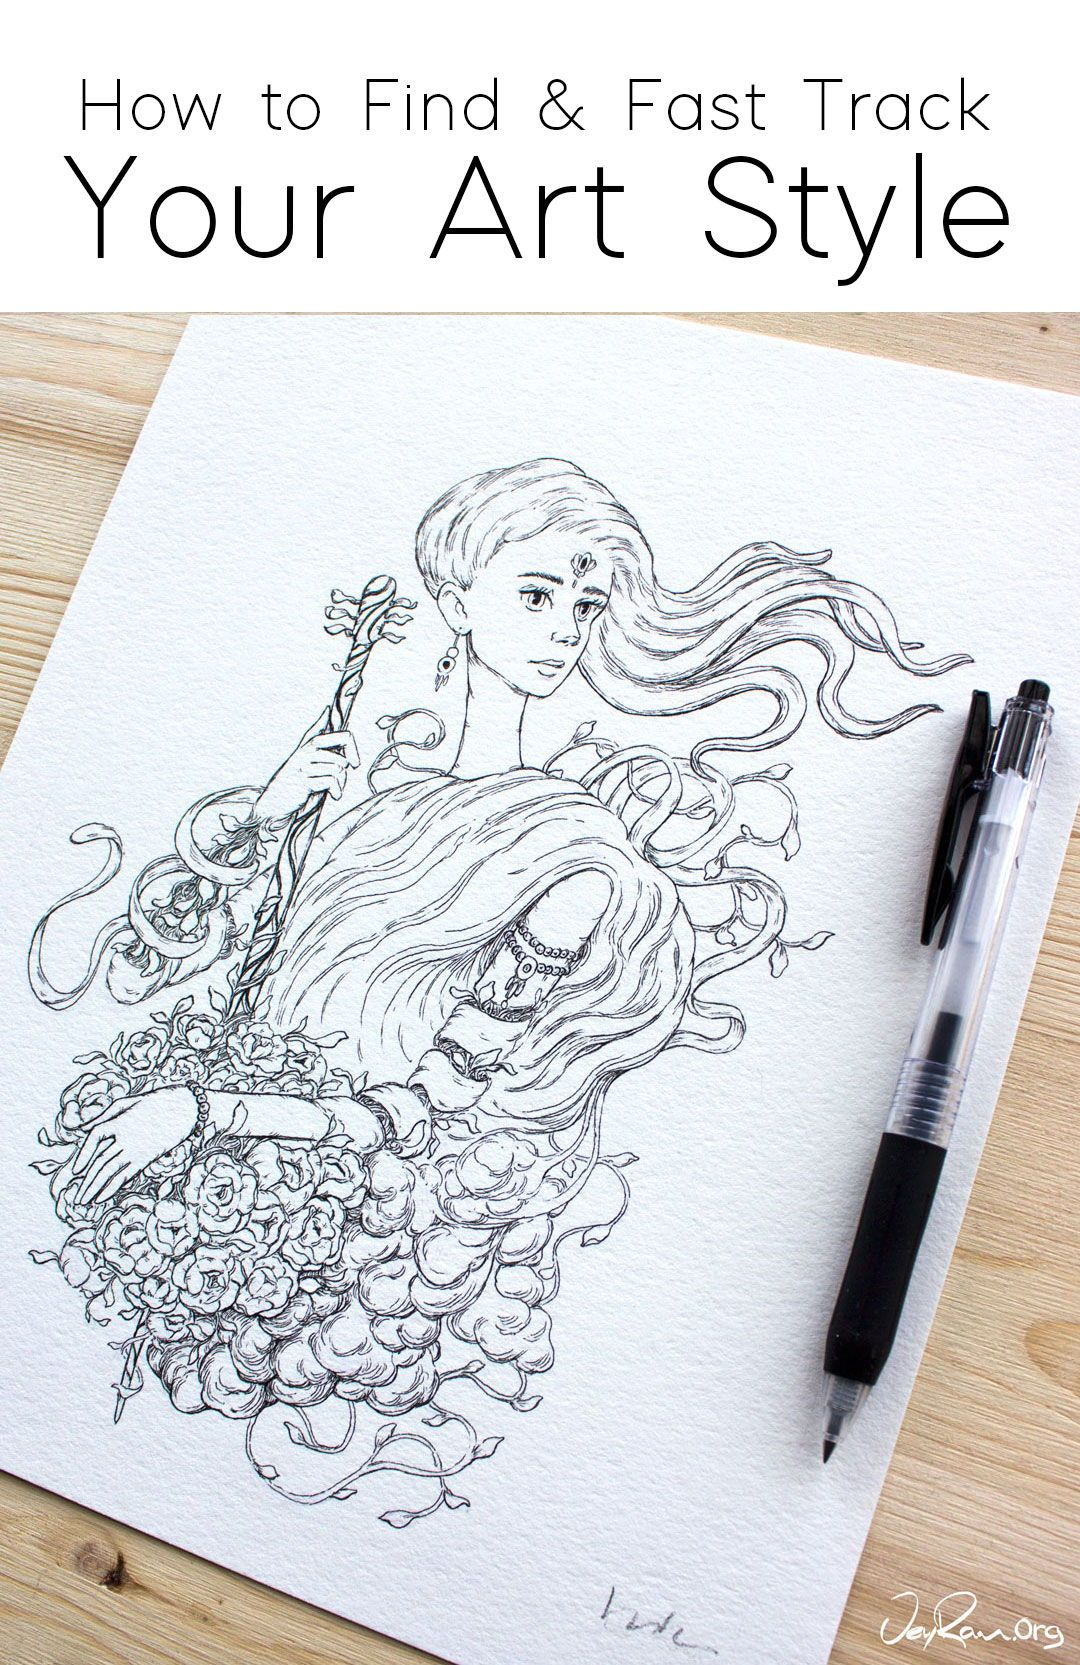 Finding Your Style Can Be A Challenging Endevour But It Can Be Made Easier With These Tips Drawing Challenges And Self R Drawings Drawing Challenge Lovers Art